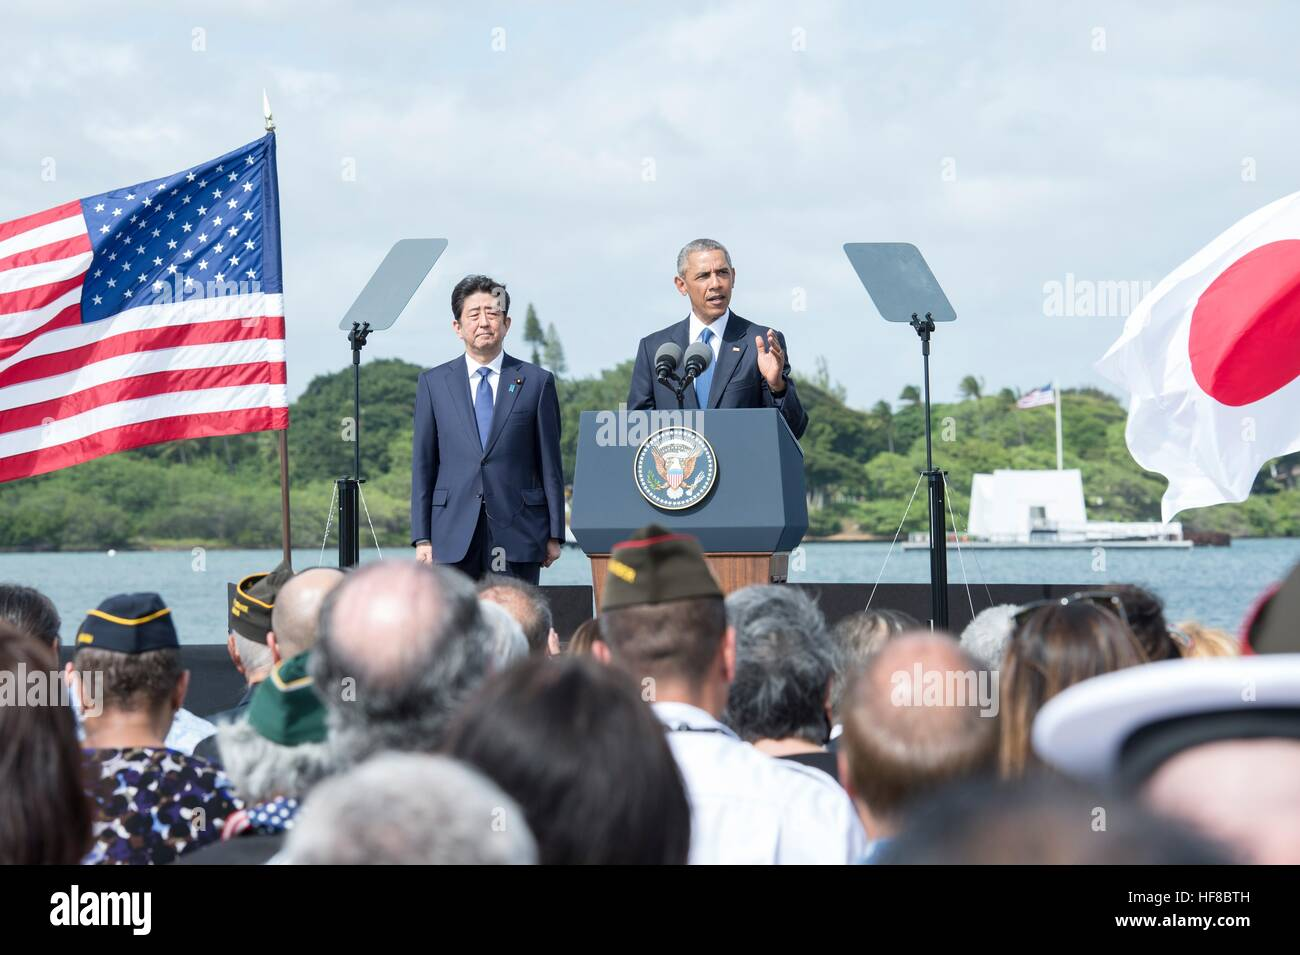 Pearl Harbour, Hawaii. 27th Dec, 2016. U.S President Barack Obama and Japanese Prime Minister Shinzo Abe deliver Stock Photo